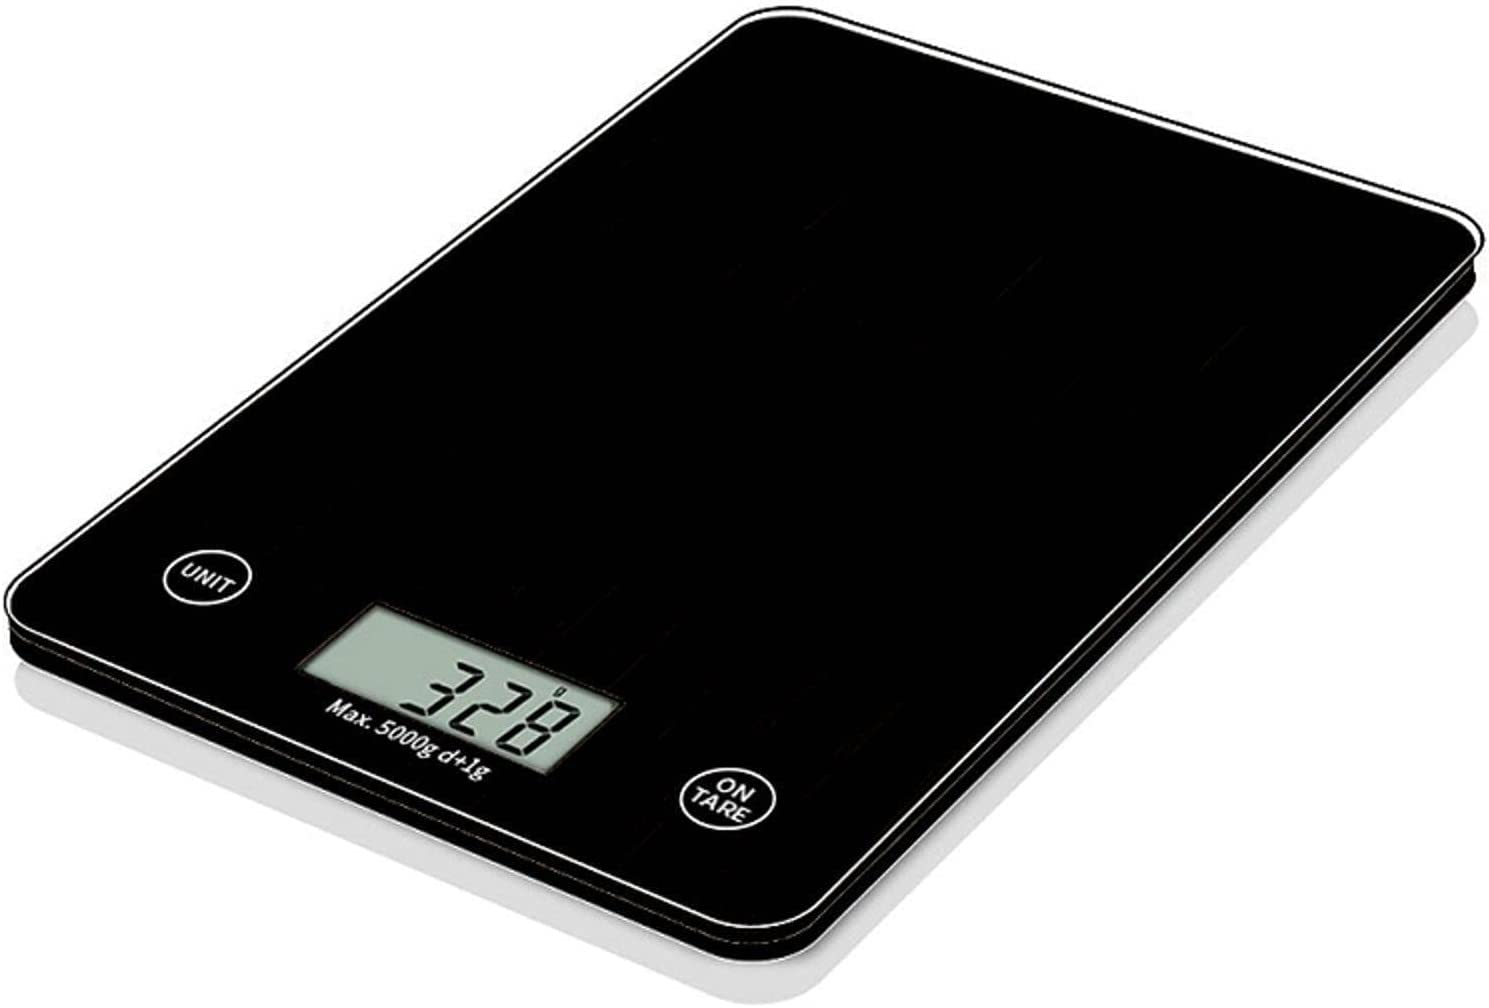 N\C USB Beauty products 1 year warranty Rechargeable Digital Weight Suitable Business for Scale